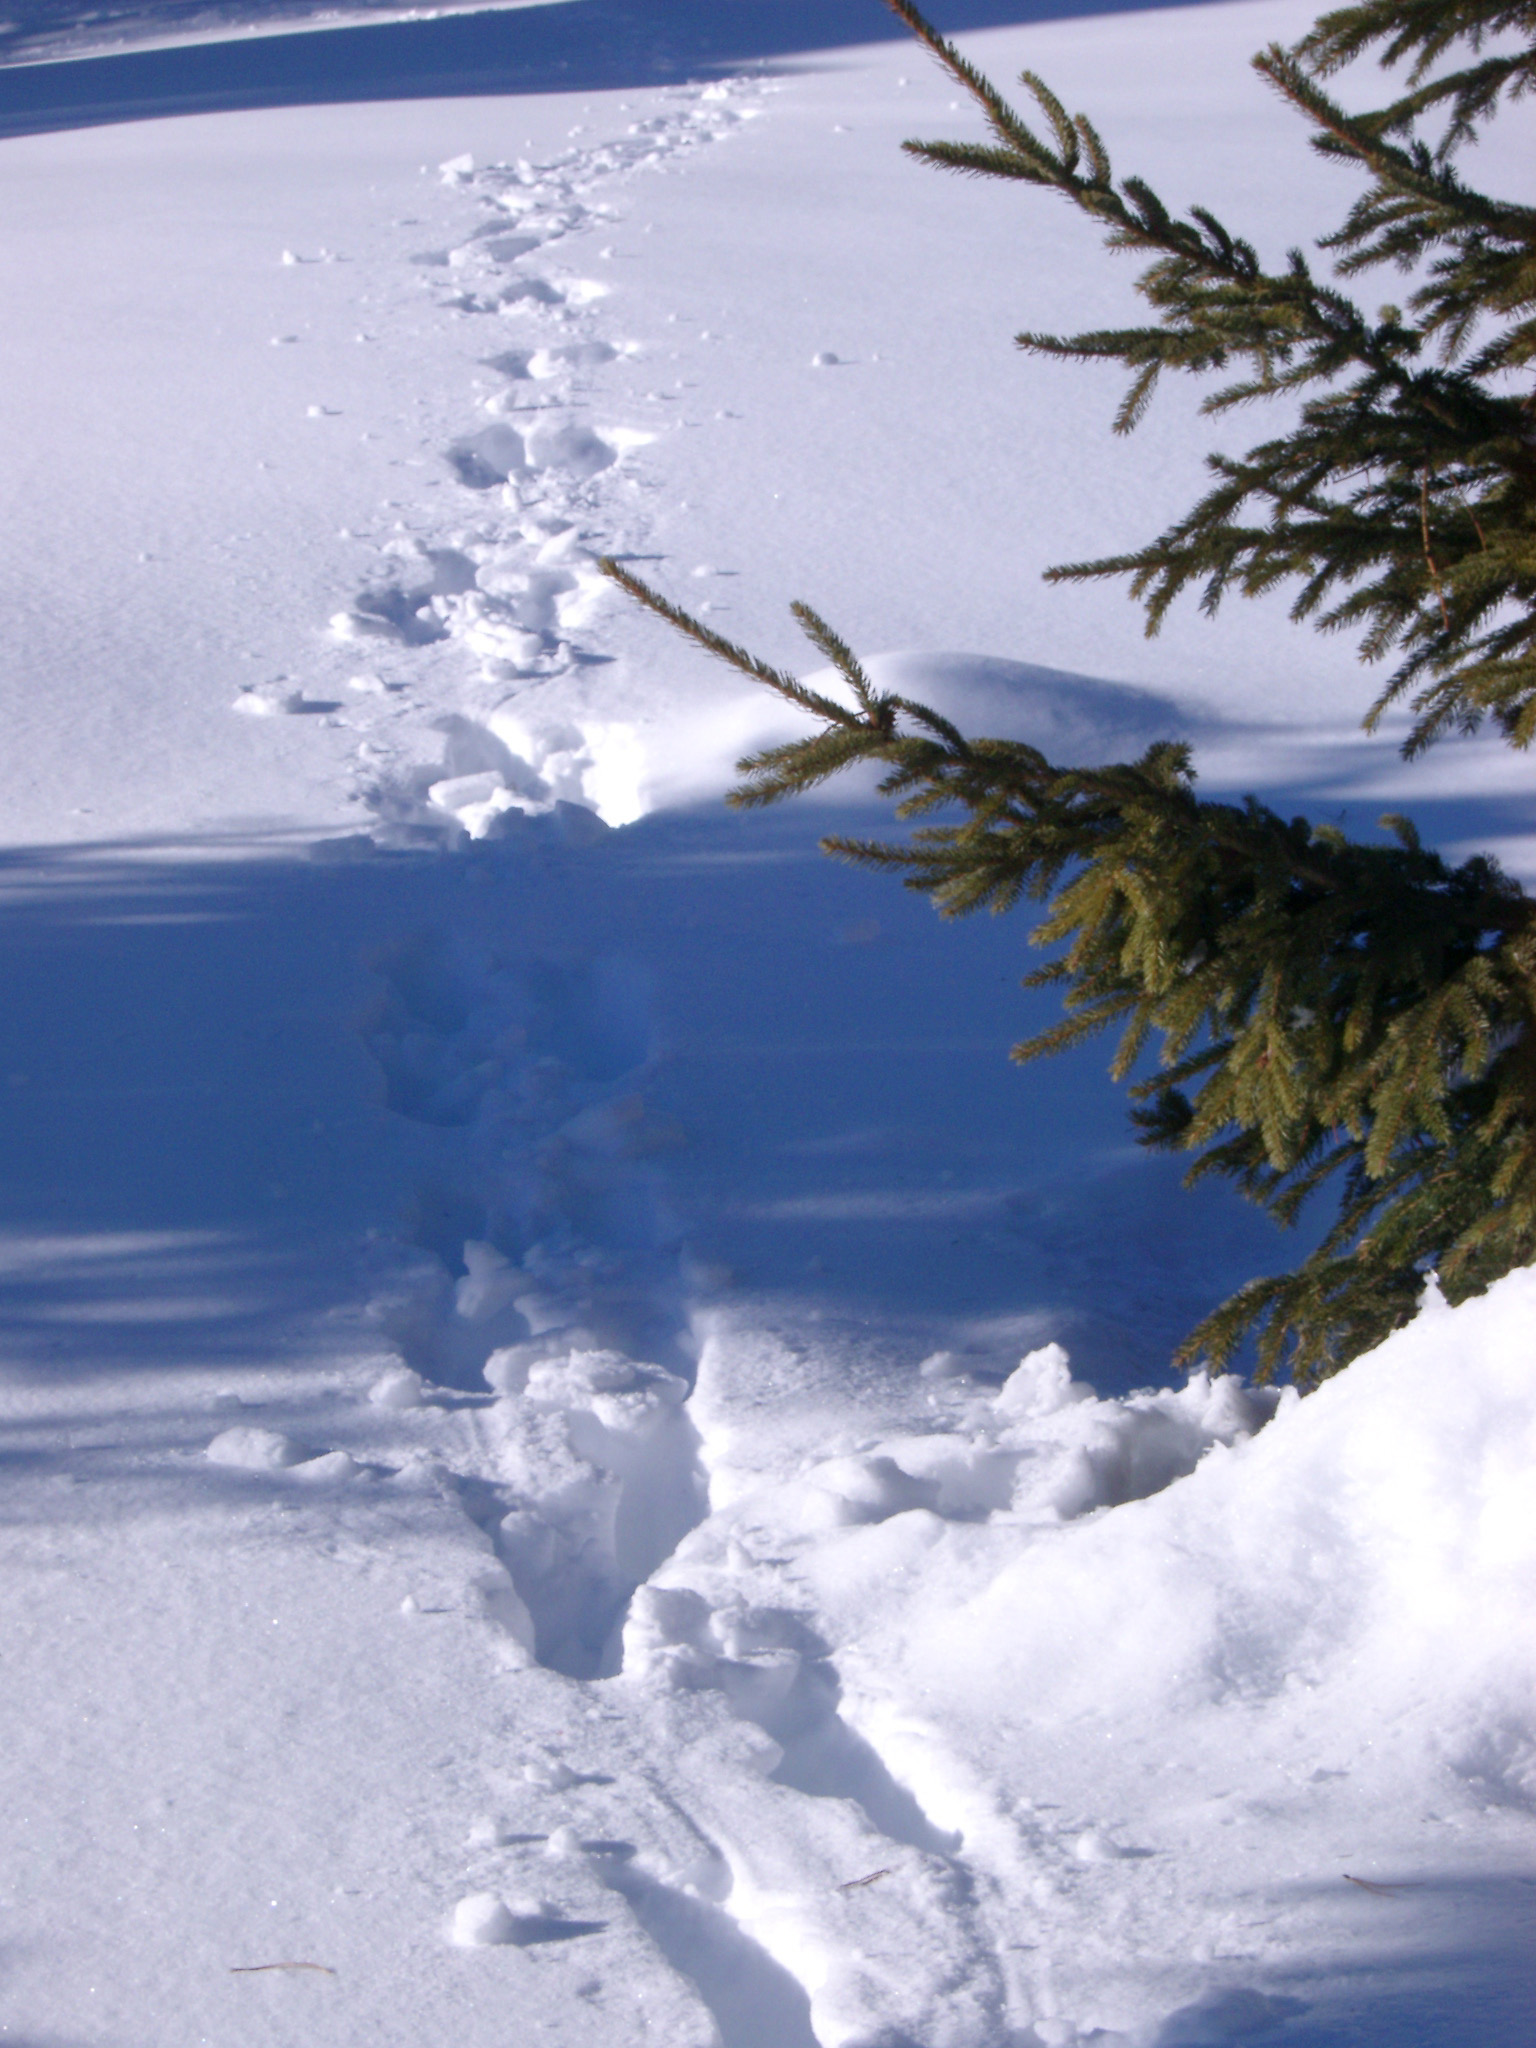 Close up Path Trails on Snow Field with Fir Tree on Side During Winter Holiday Season